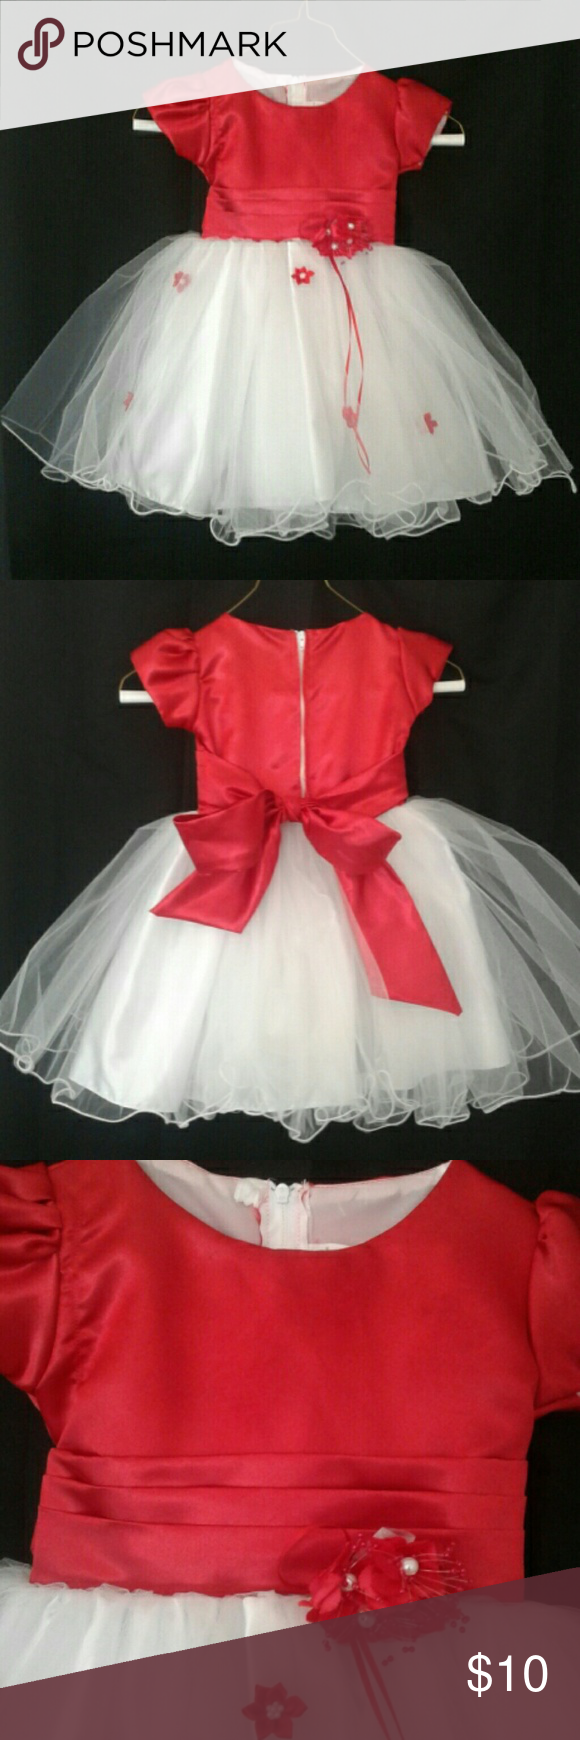 a986bc49a0f Berto Kids tulle  poof  dress size 1  12m-18m Precious lined